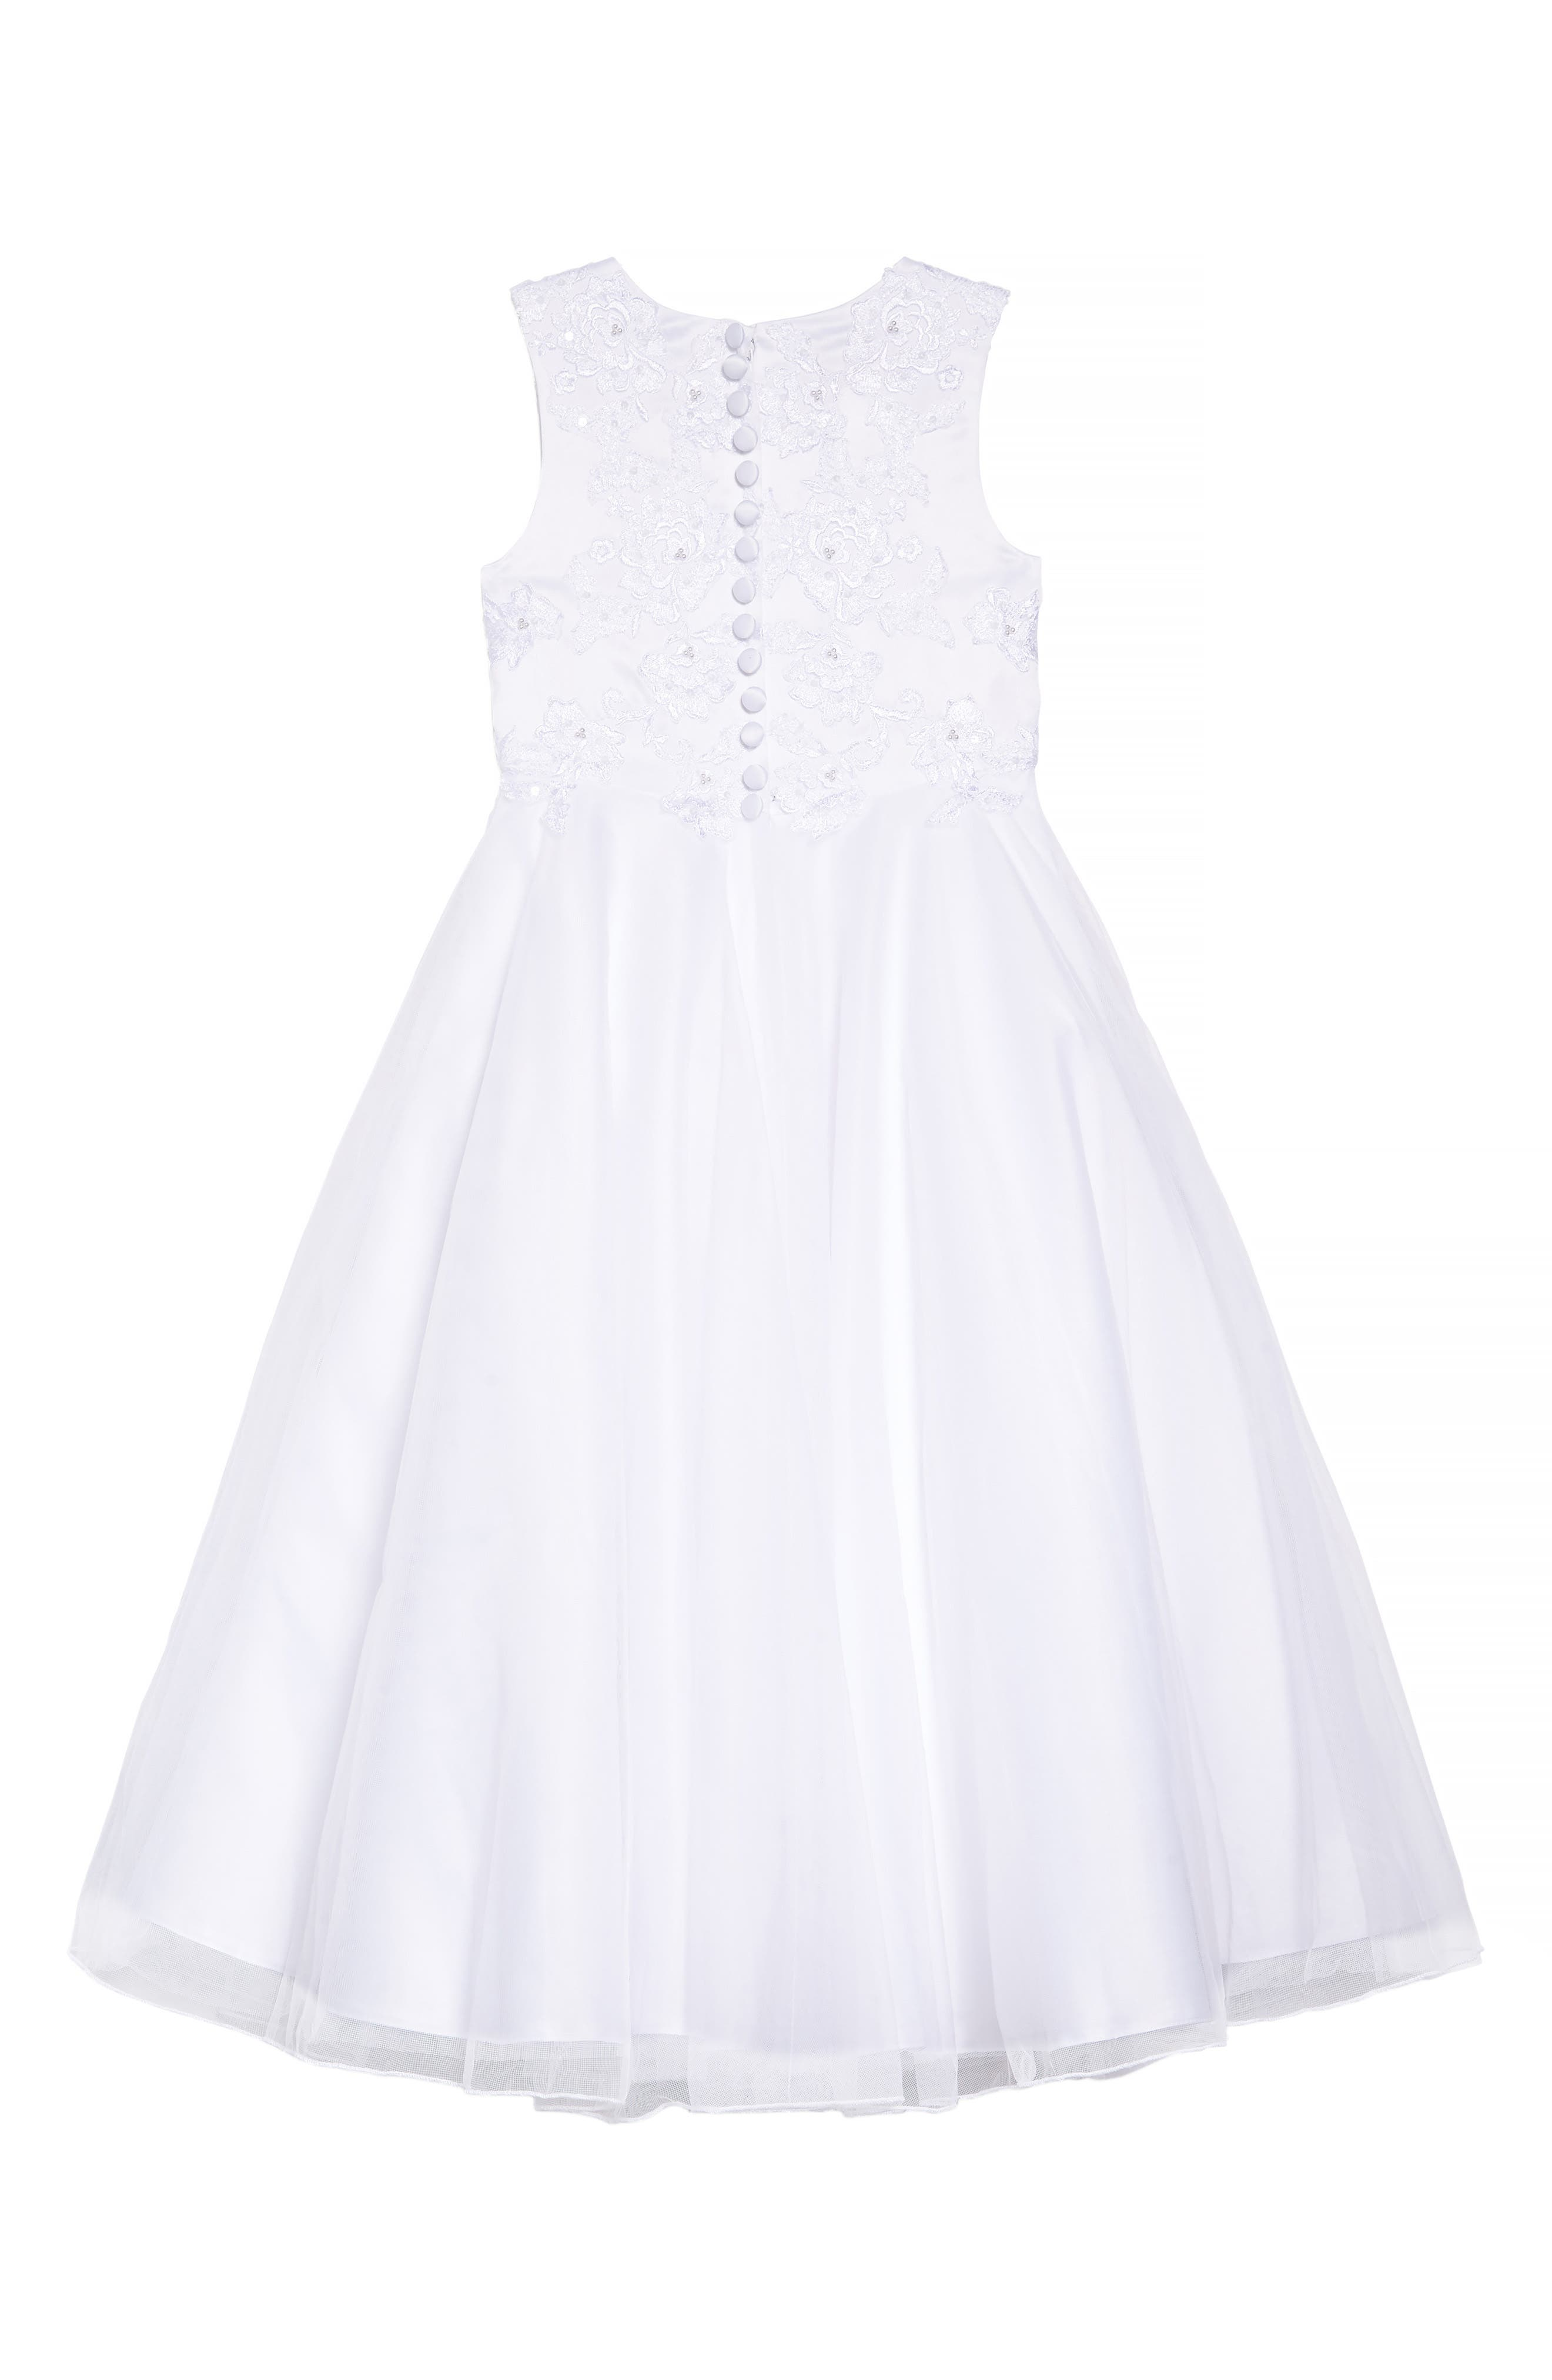 LAUREN MARIE, Embroidered Bodice Tulle Dress, Alternate thumbnail 4, color, WHITE